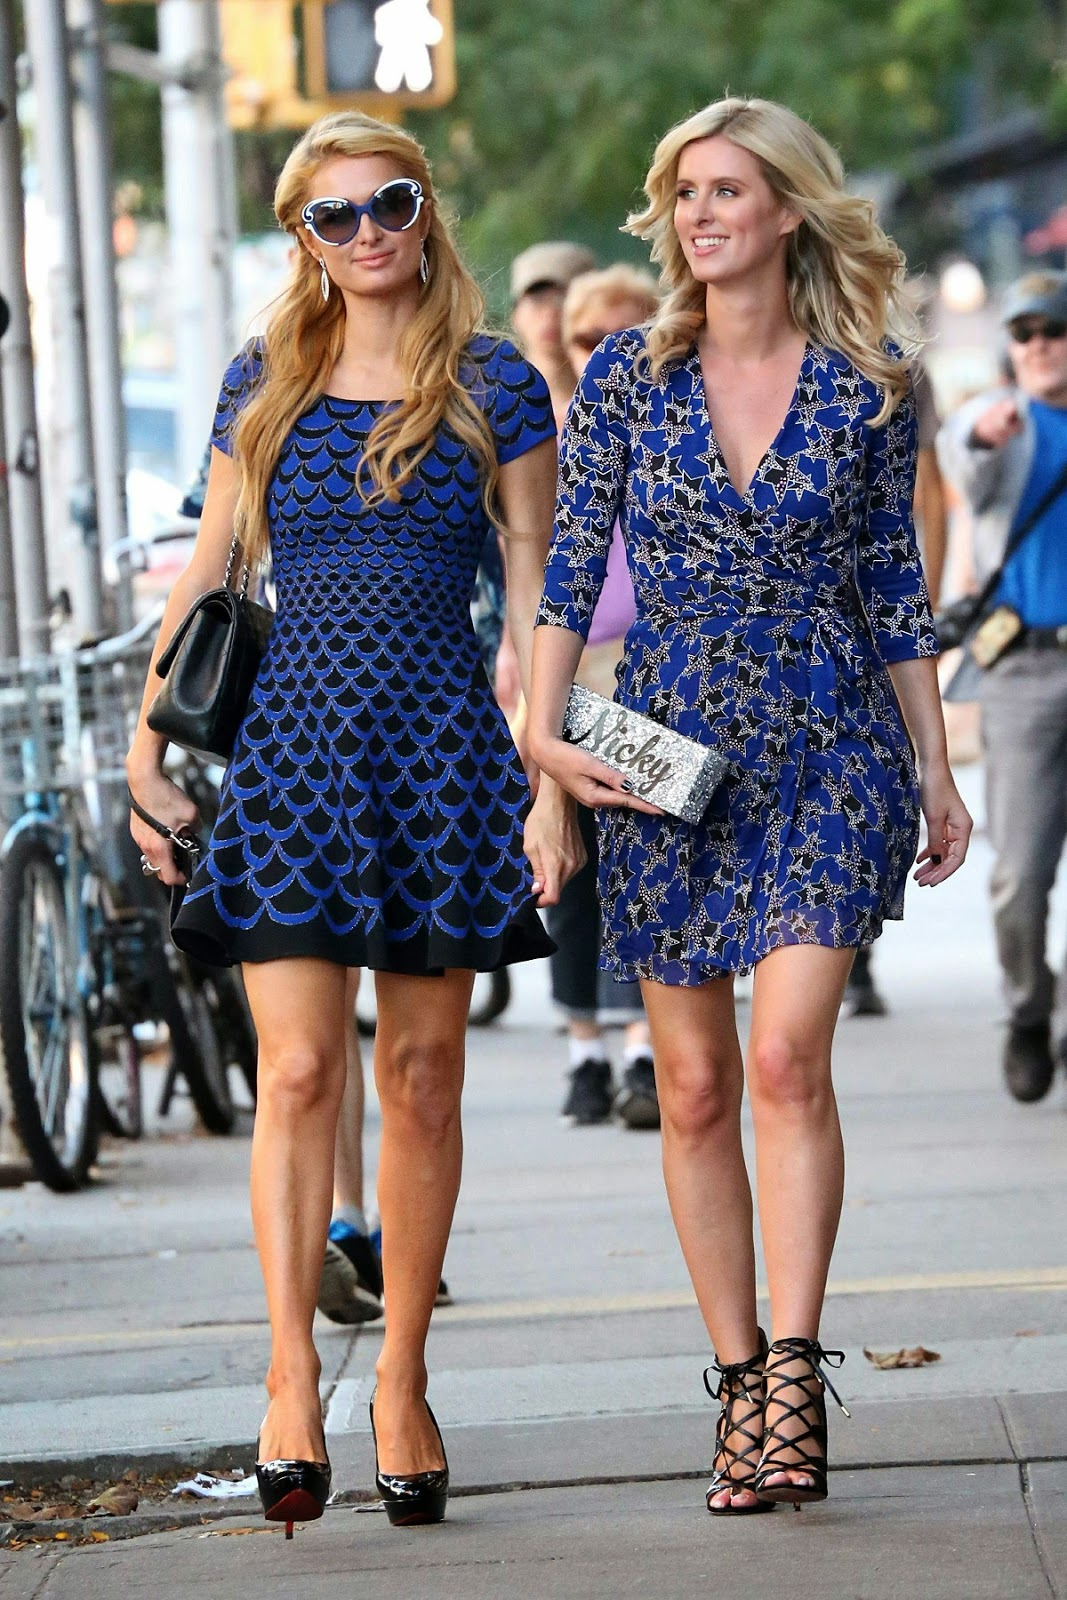 Arts Cross Stitch: Nicky Hilton and Paris Hilton out in SoHo